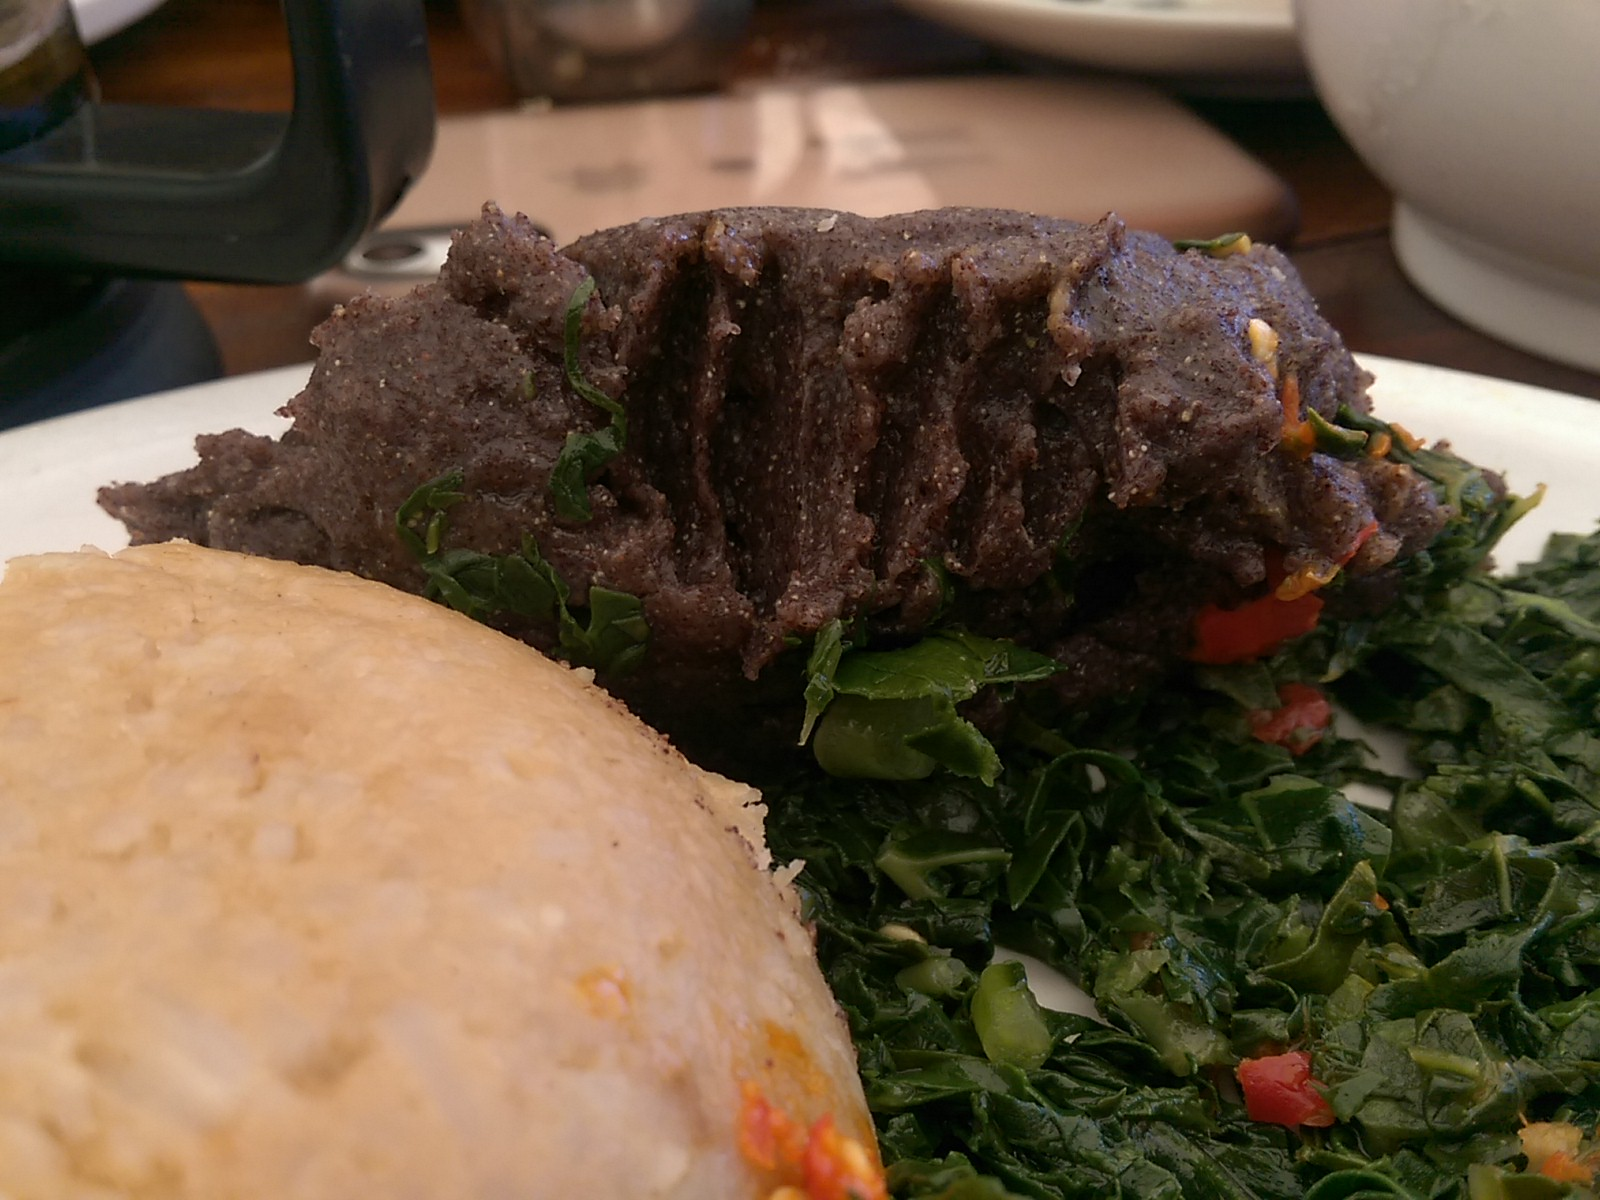 Close up of a black ball of sadza with forkmarks, sitting on some greens